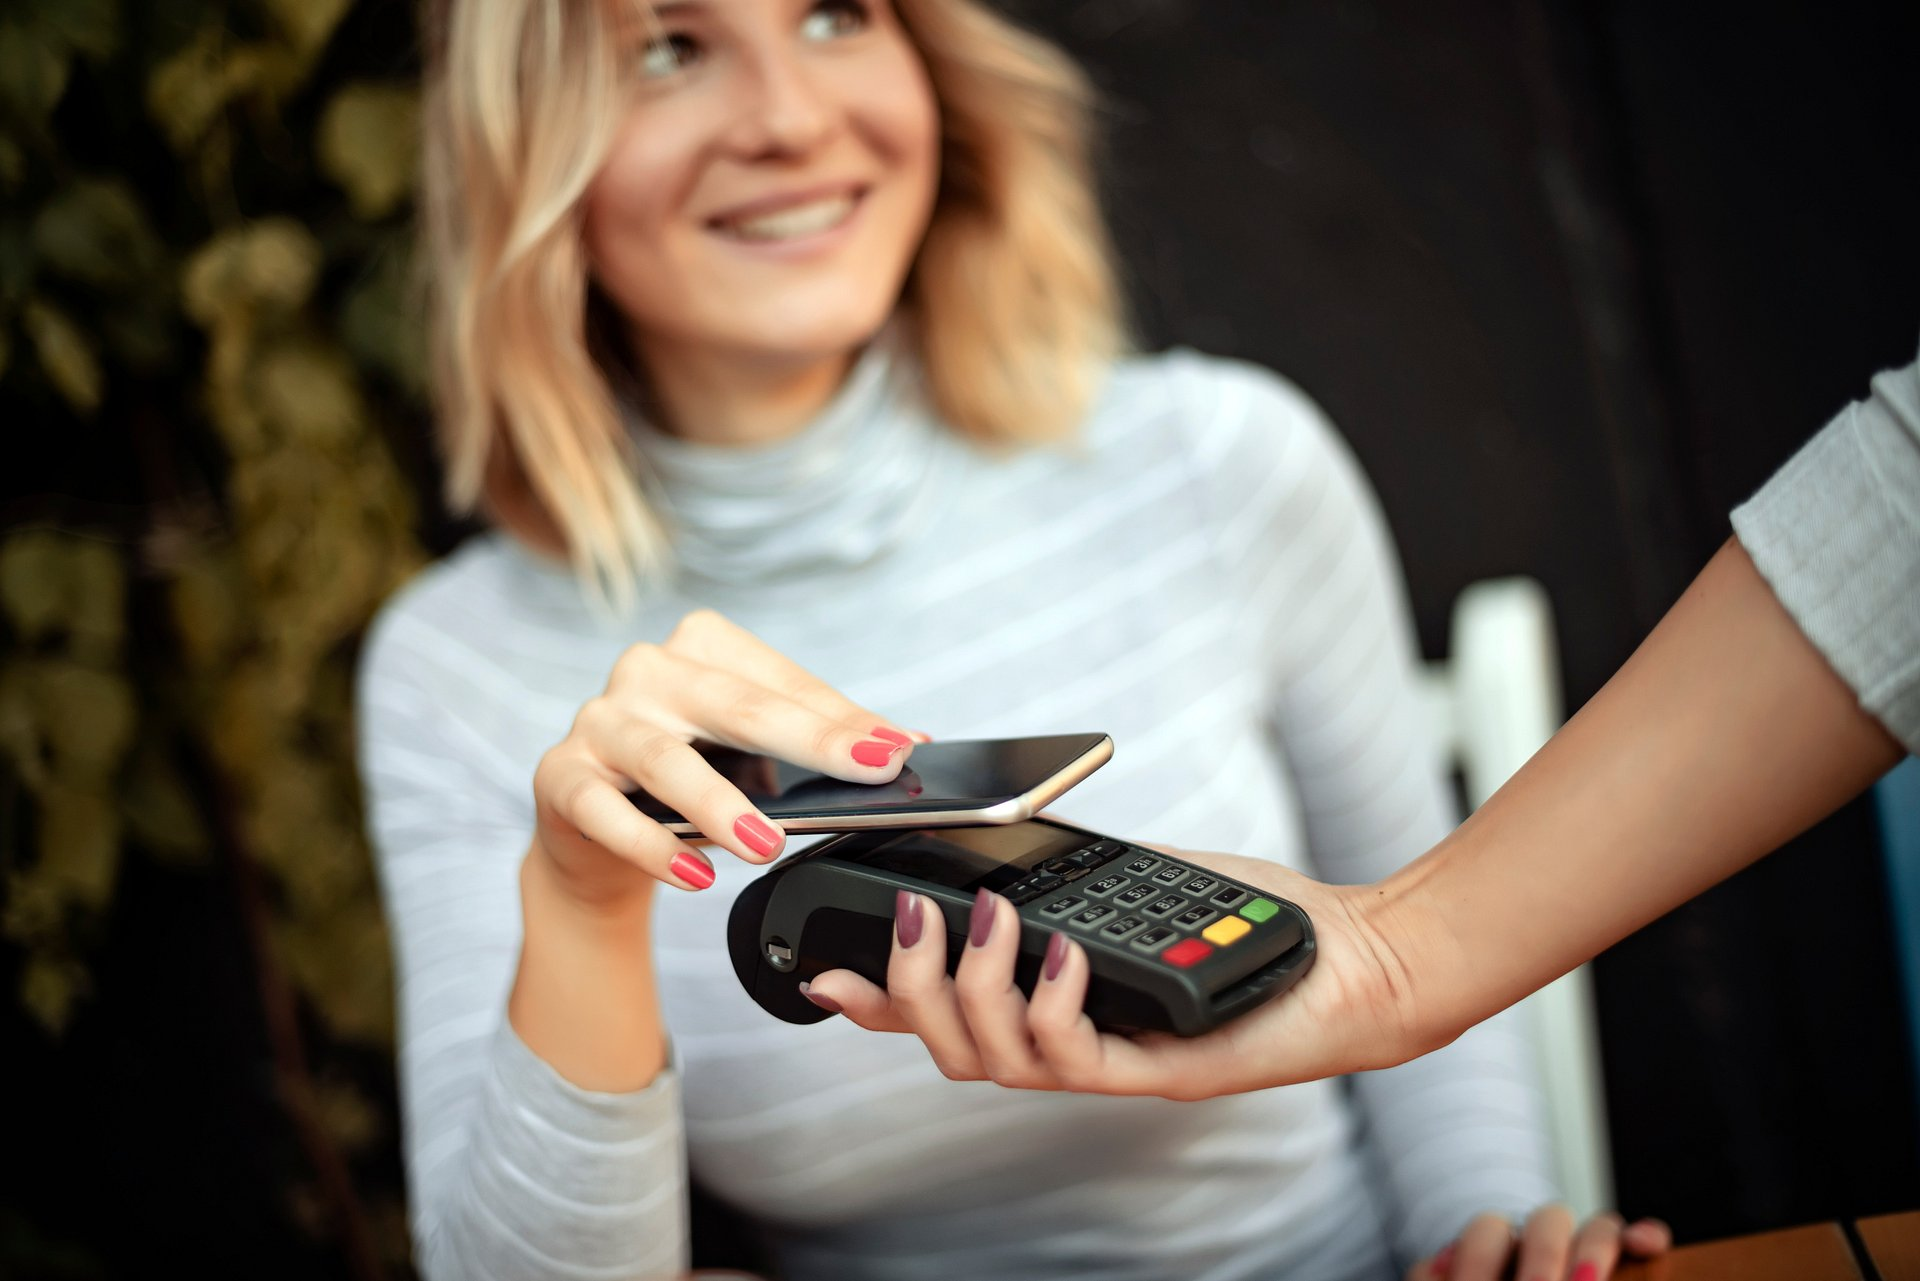 Wallet? A phone is enough – pay contactless with Google Pay!